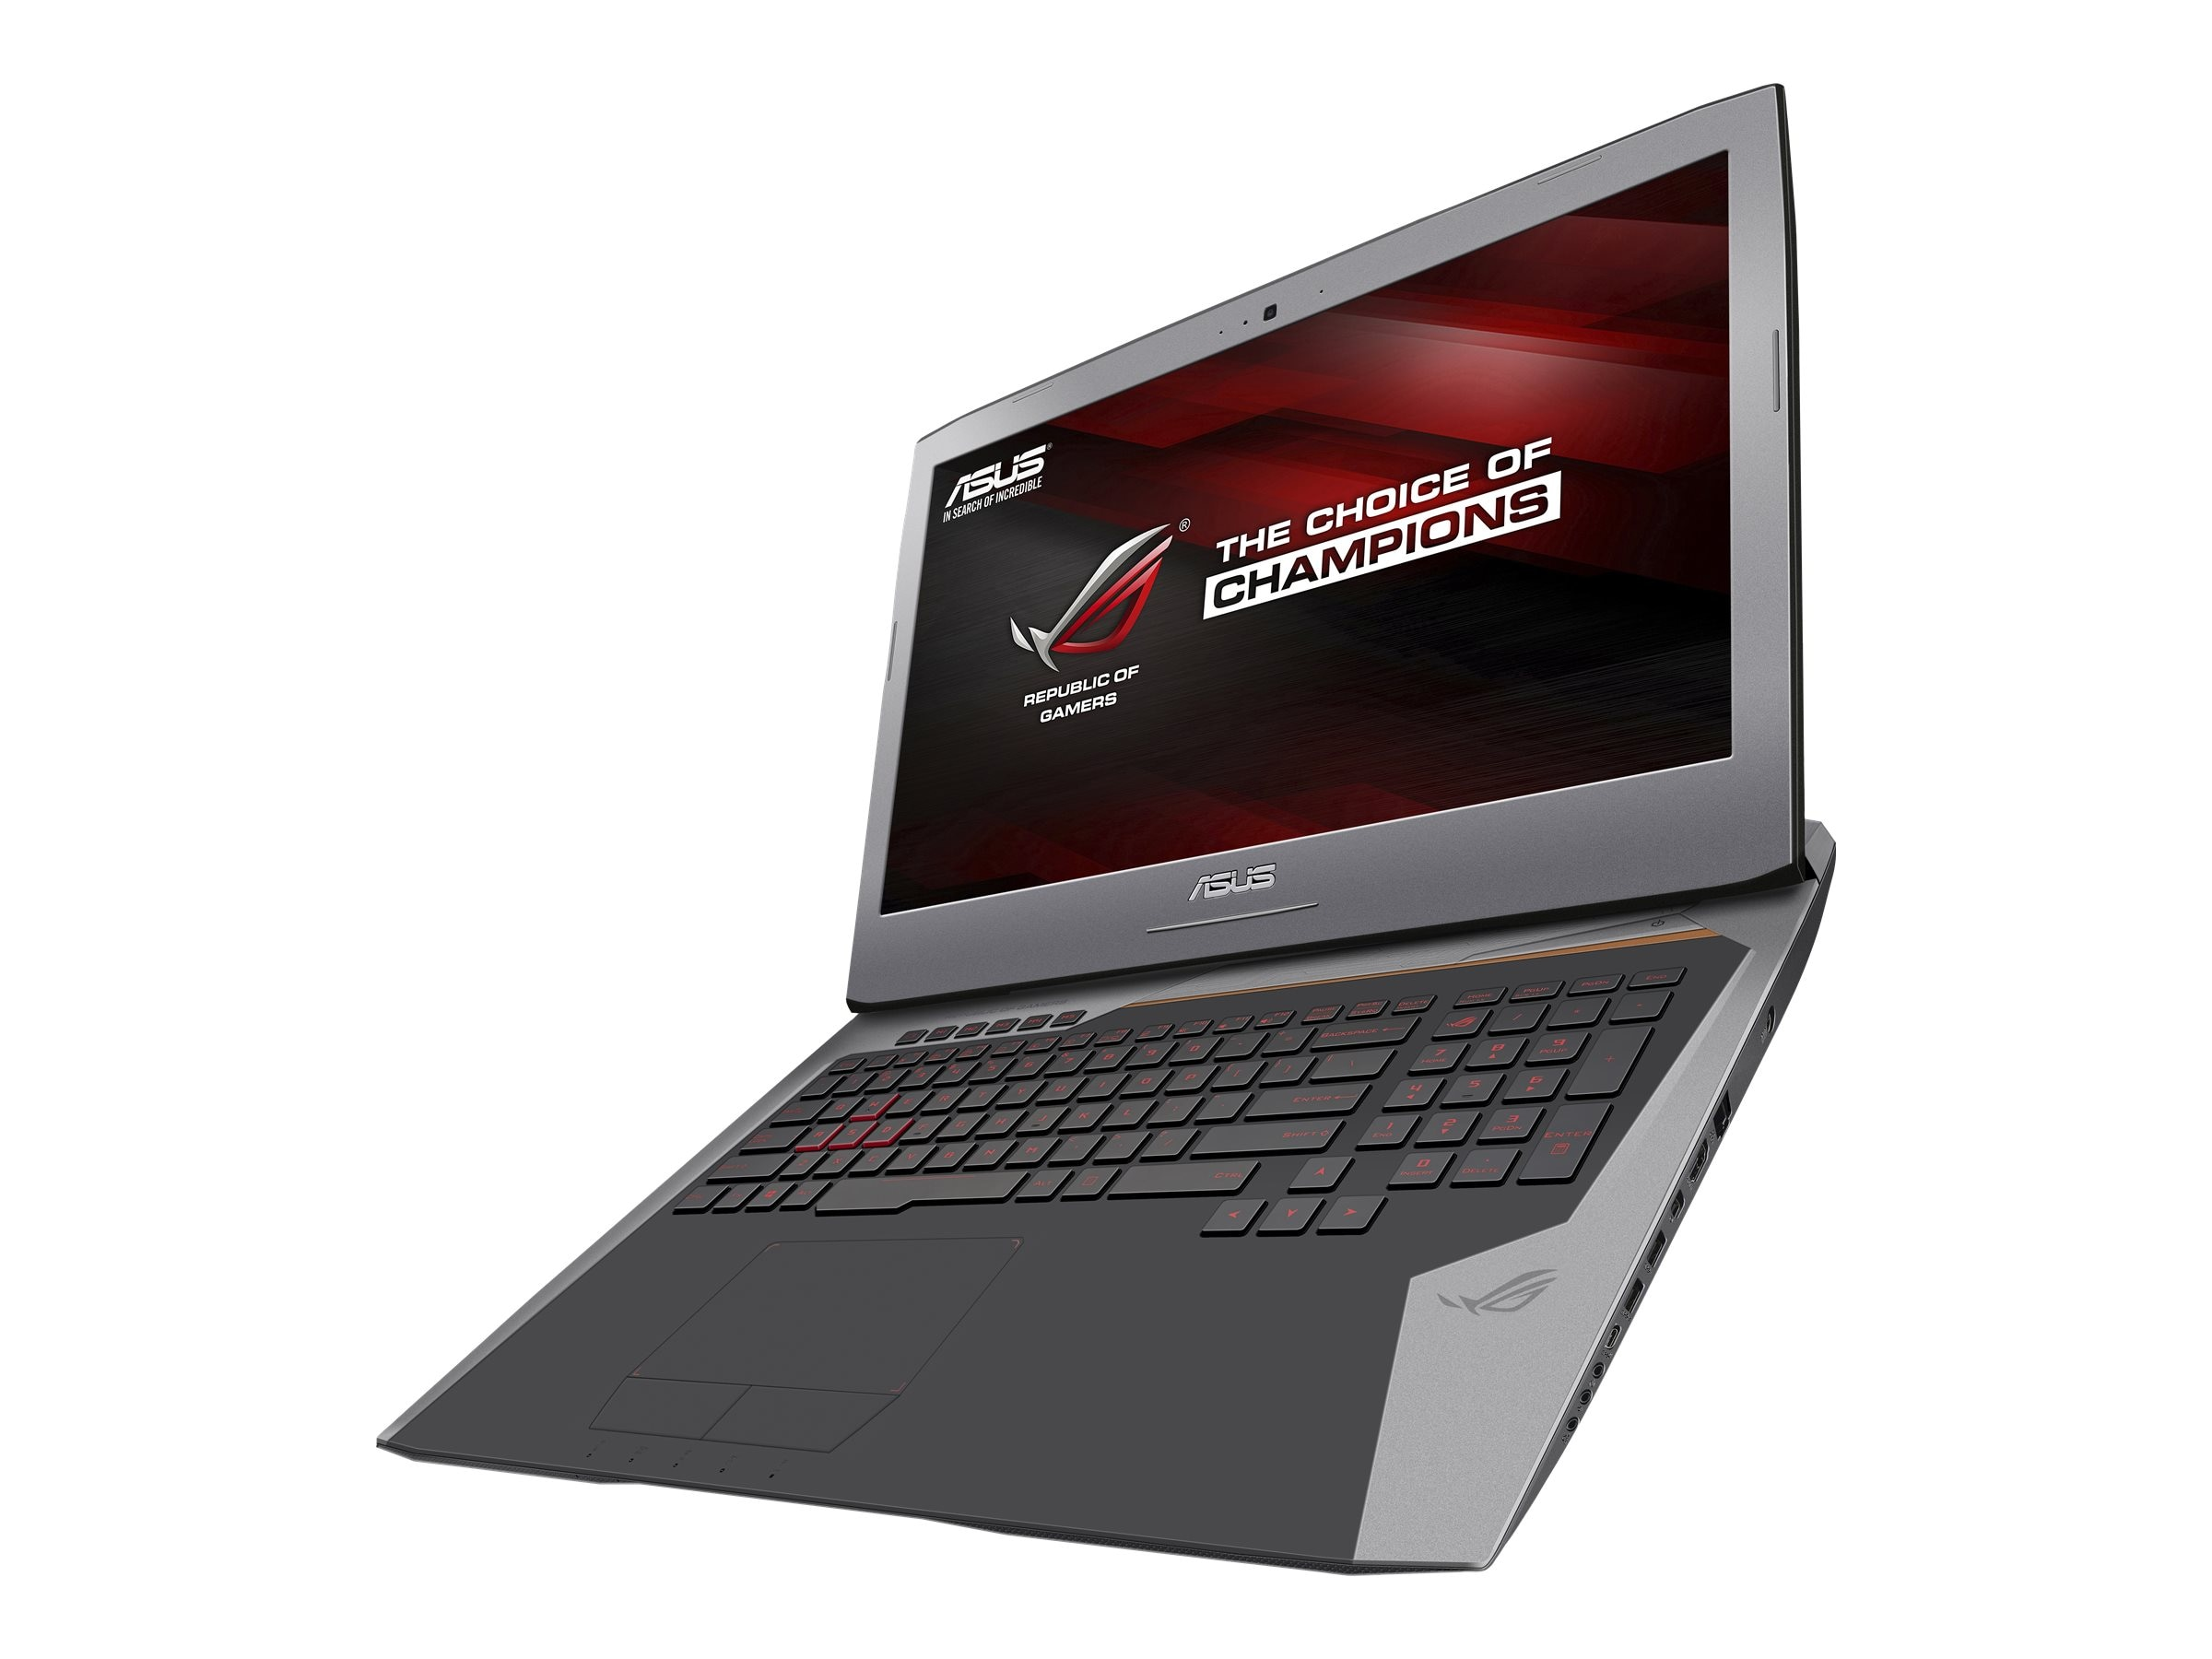 Asus G752VT-DH74 17.3 Notebook PC, G752VT-DH74